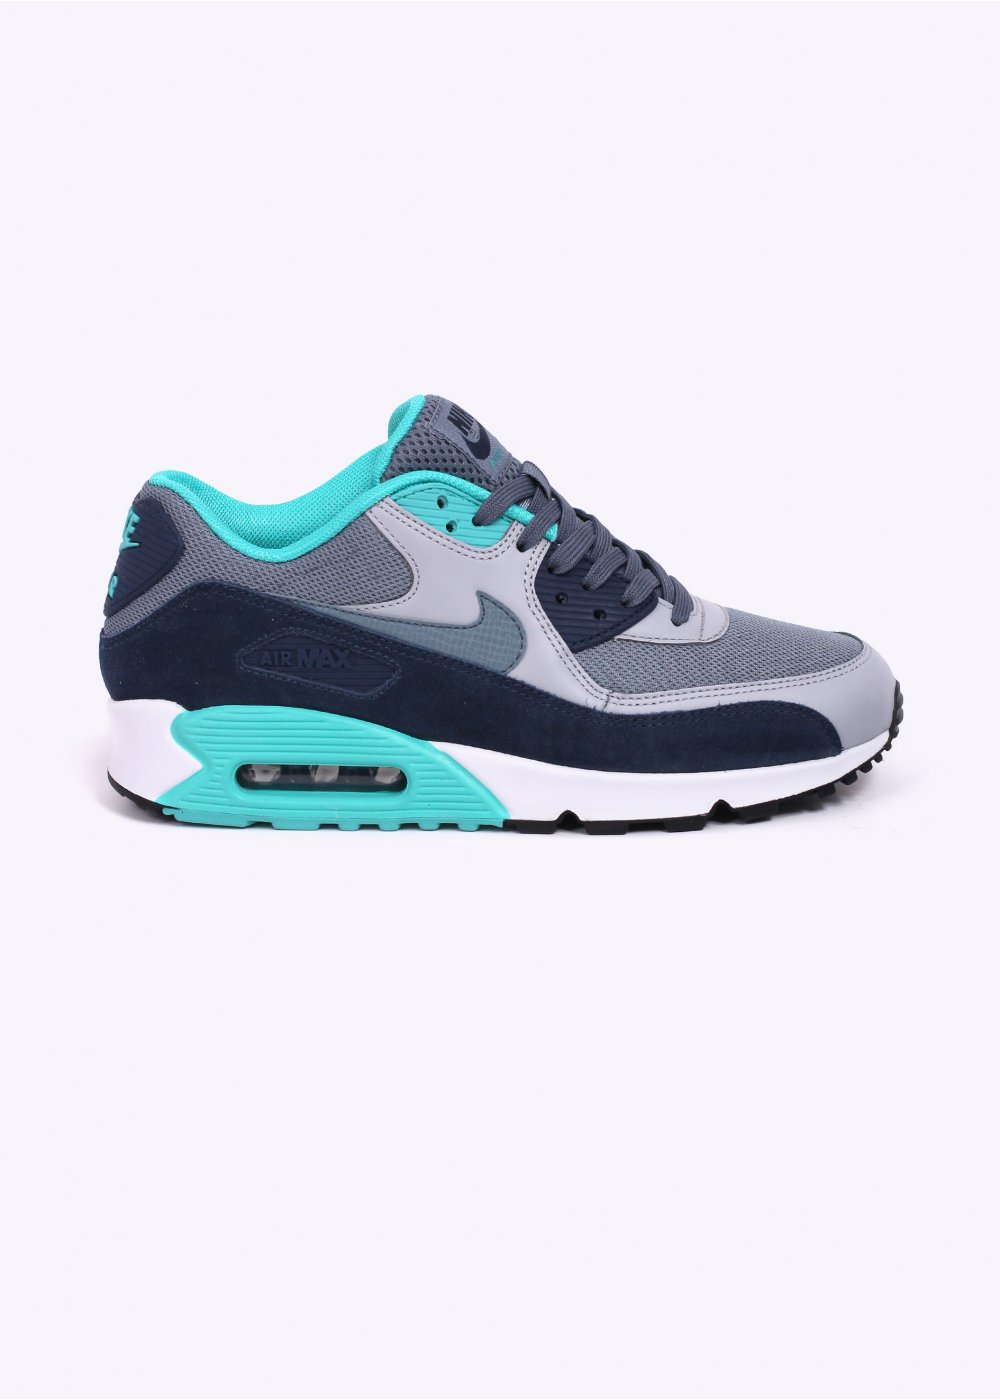 Nike Footwear Air Max 90 Essential Trainers Blue Graphite